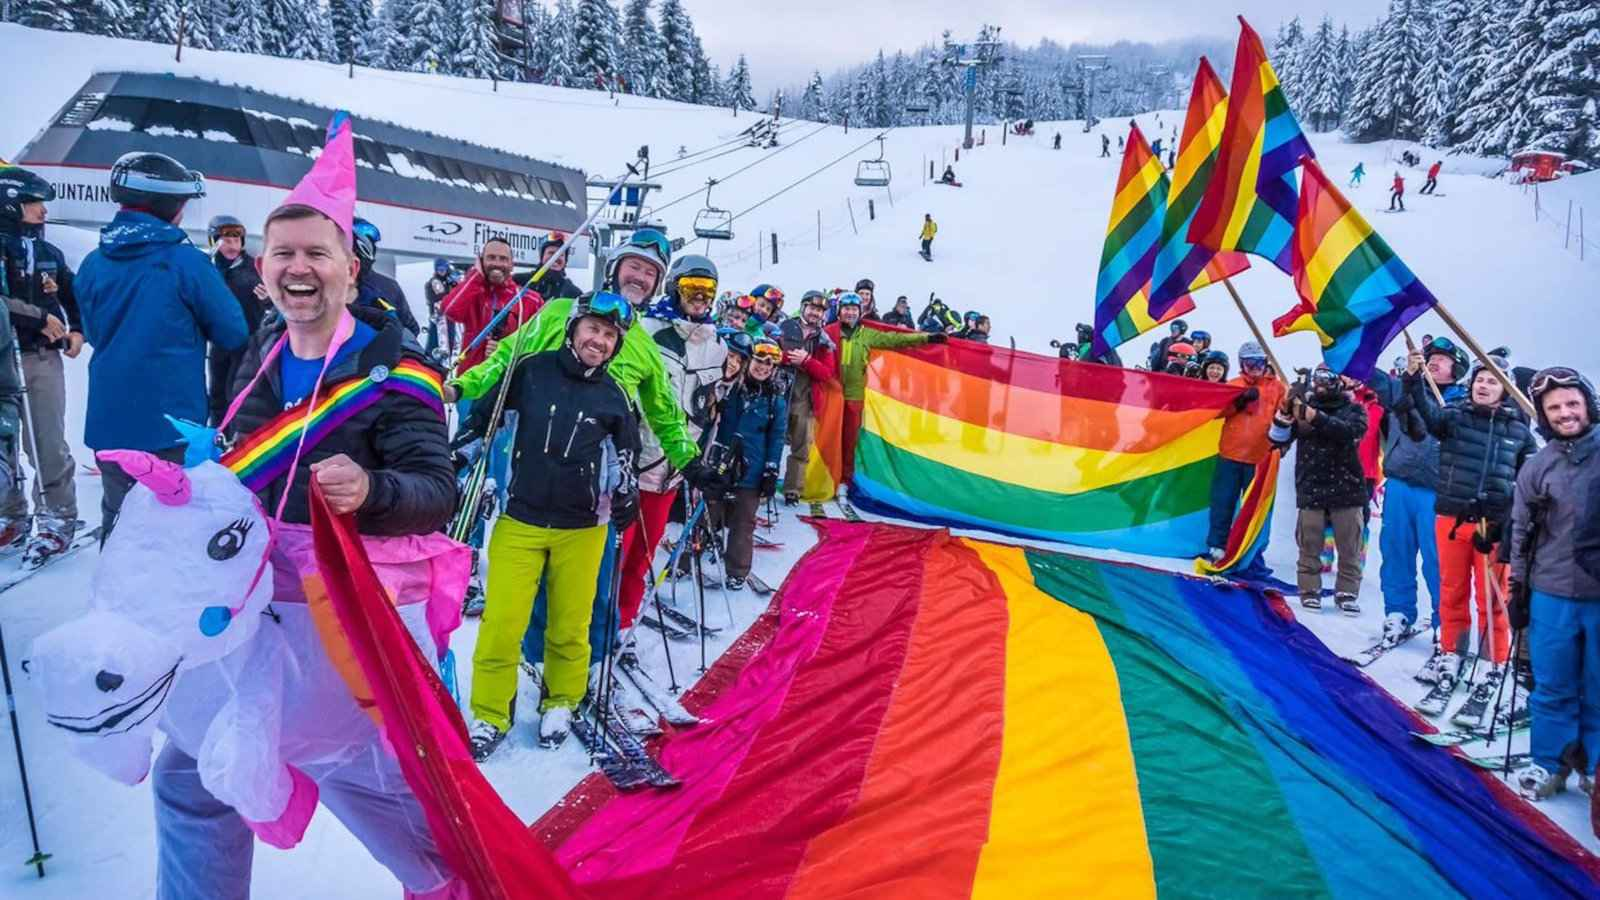 Whistler Pride's snow pride parade is just one of the exciting activities you can take part in during this fabulous week-long event